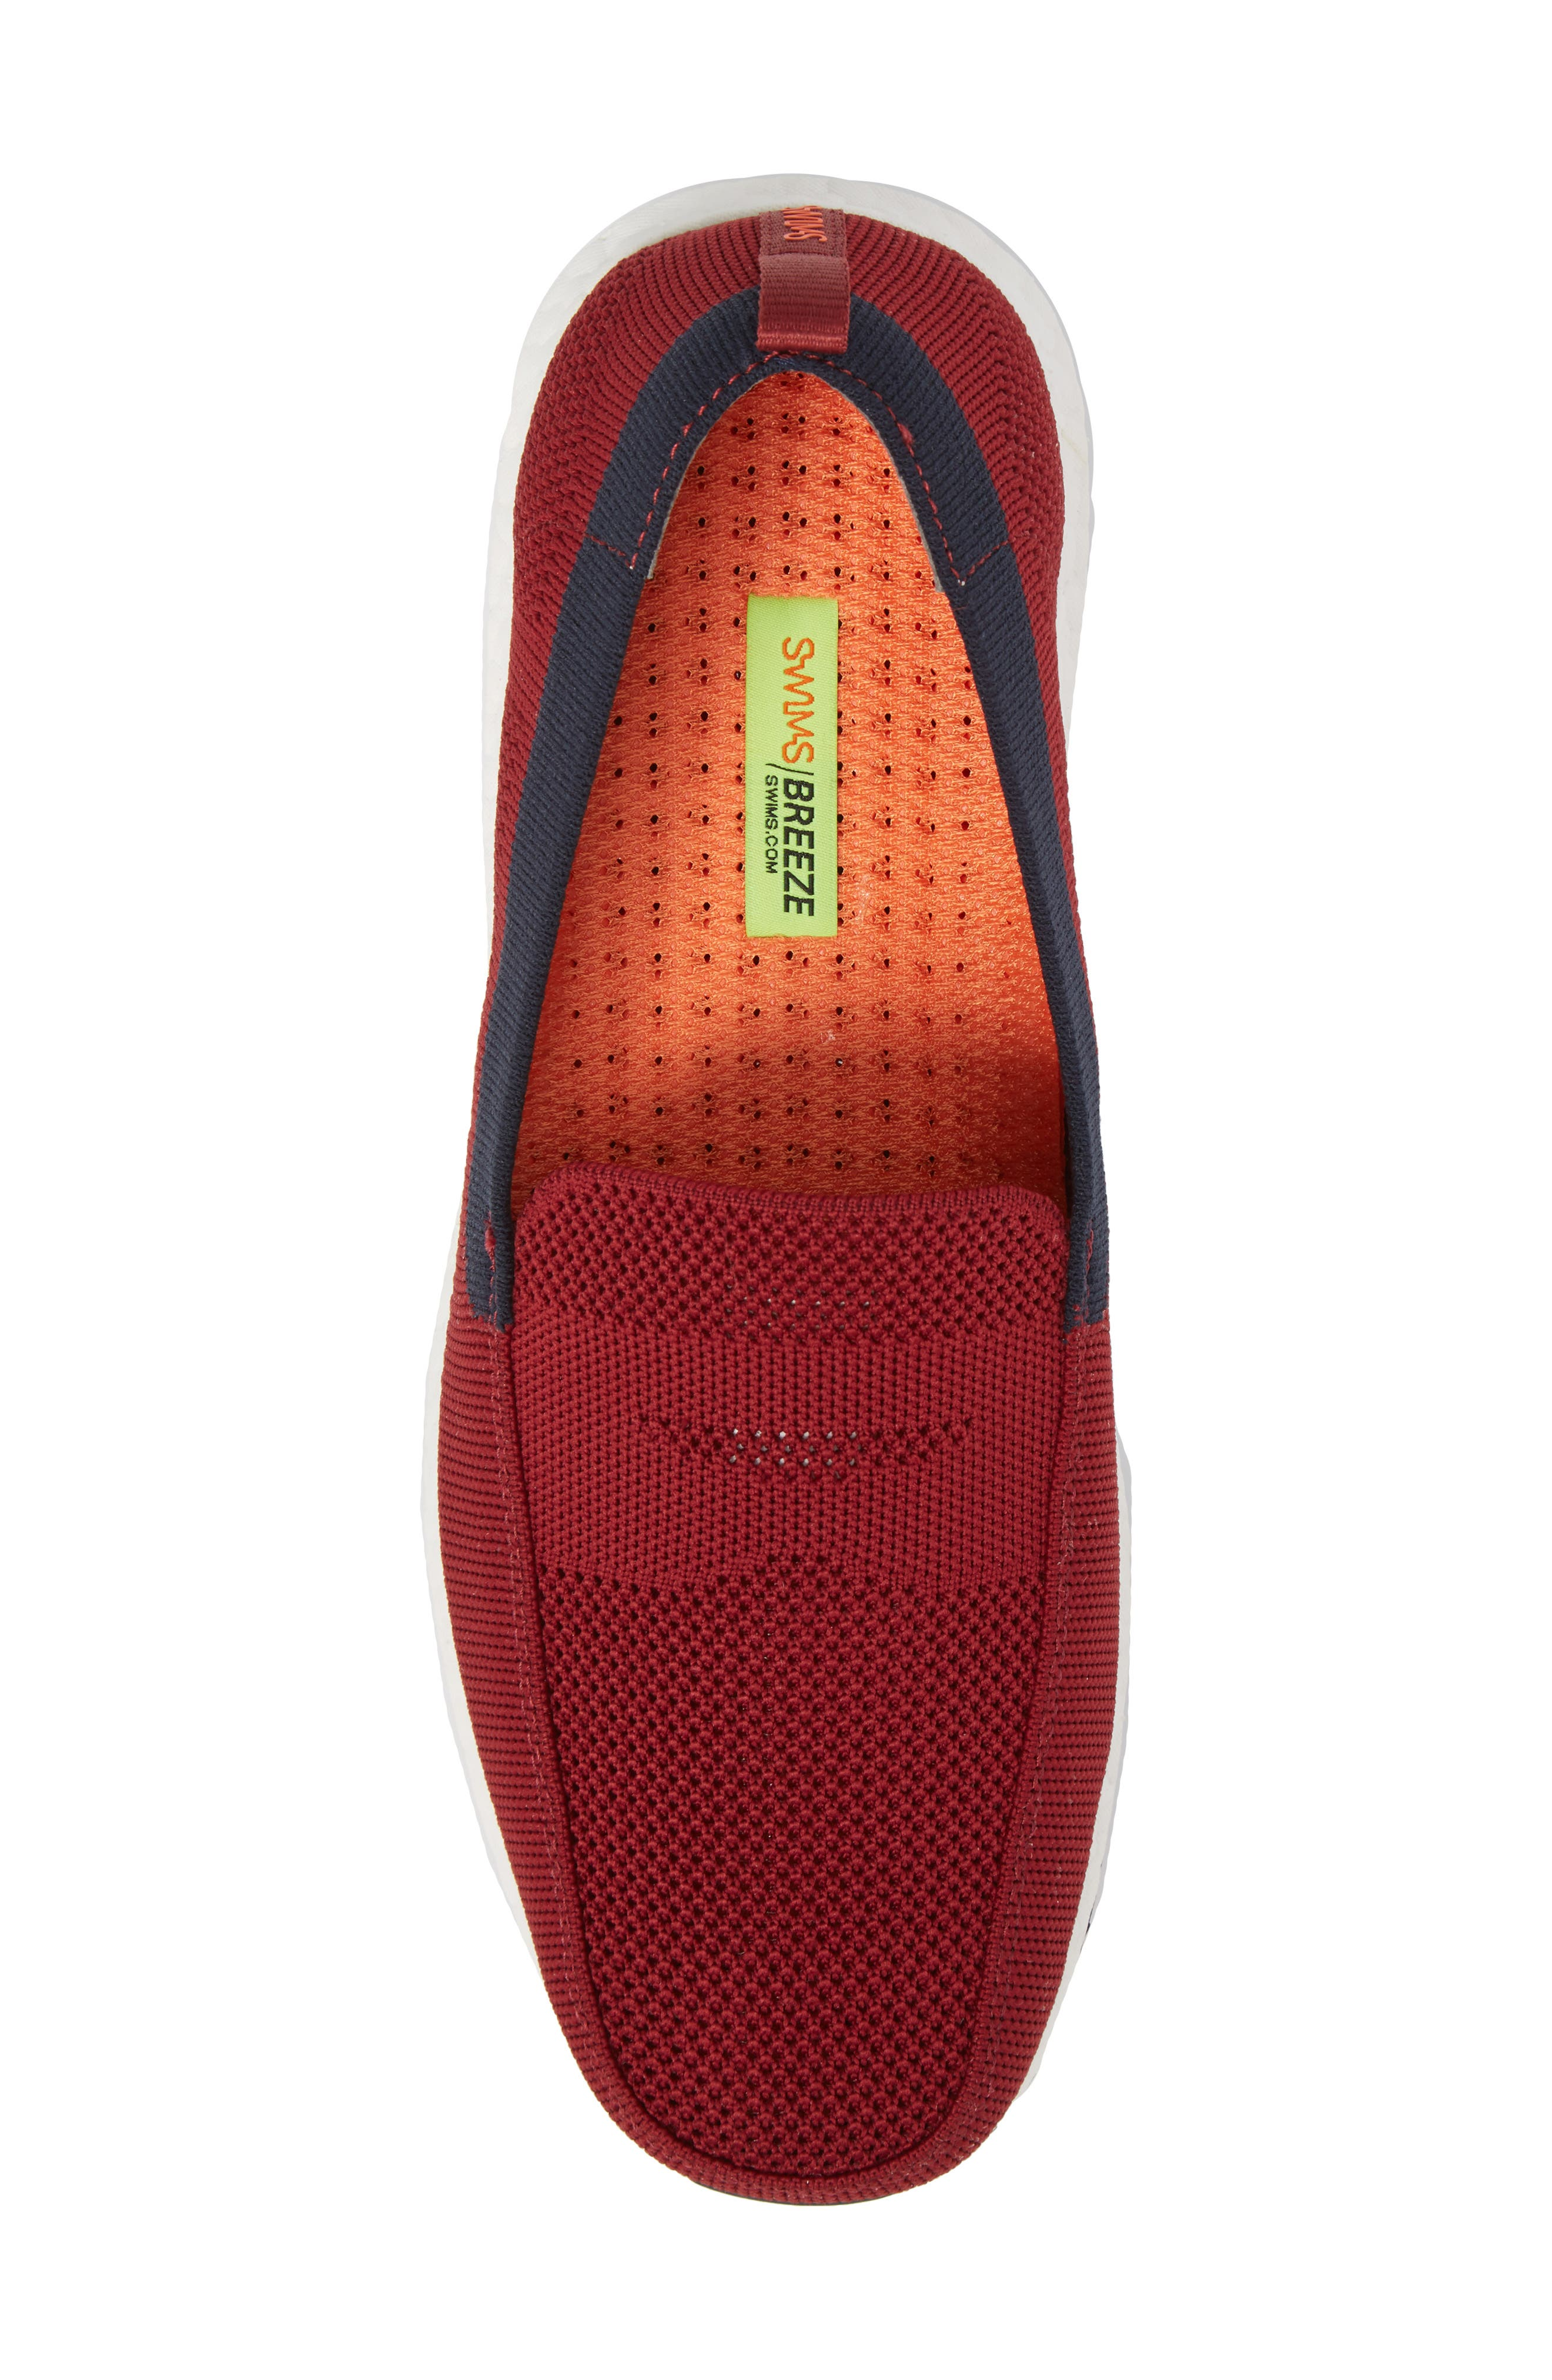 Breeze Leap Penny Loafer,                             Alternate thumbnail 5, color,                             Deep Red/ Navy